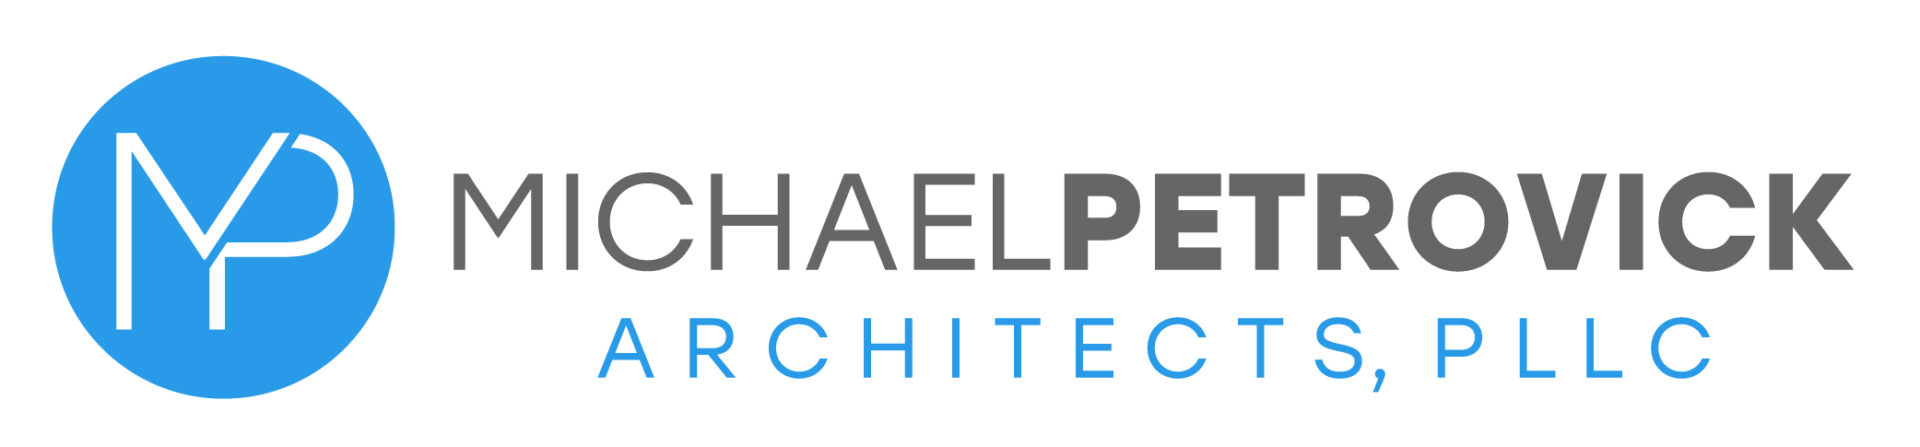 Michael Petrovick Architect